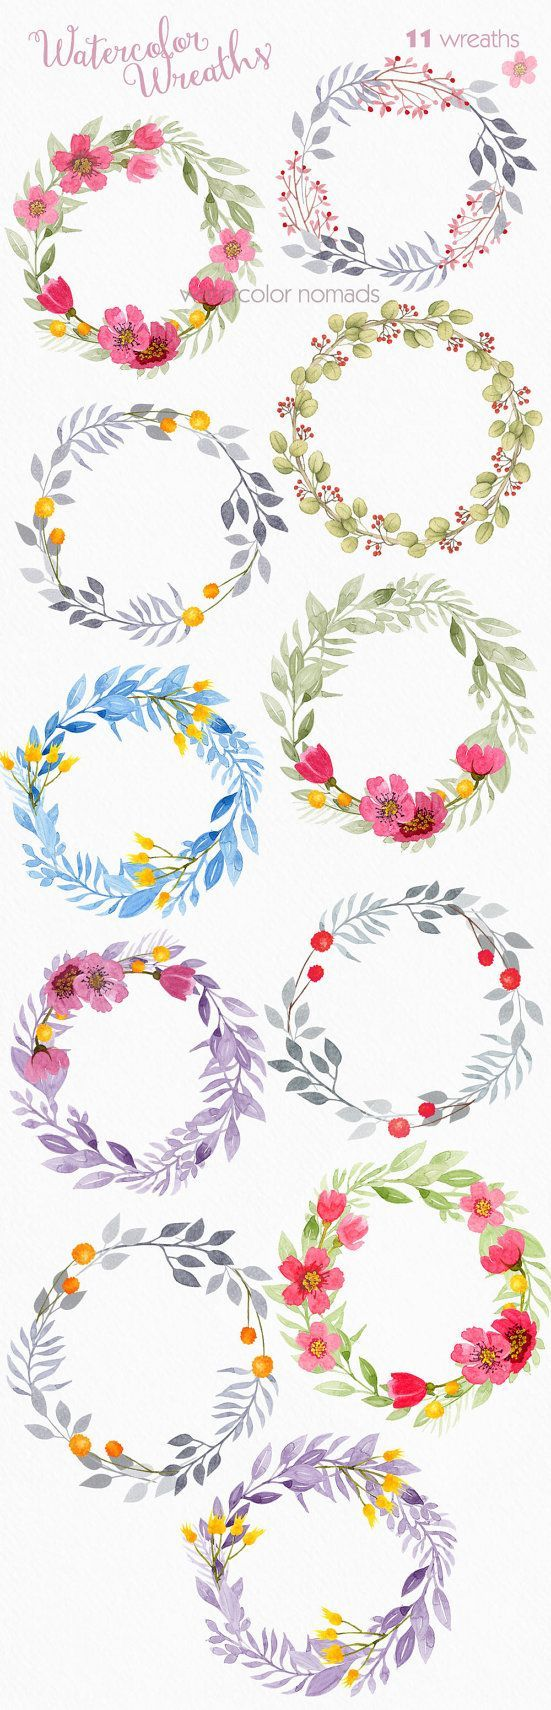 Floral wreath clipart, watercolor clipart, wedding clipart, flower.